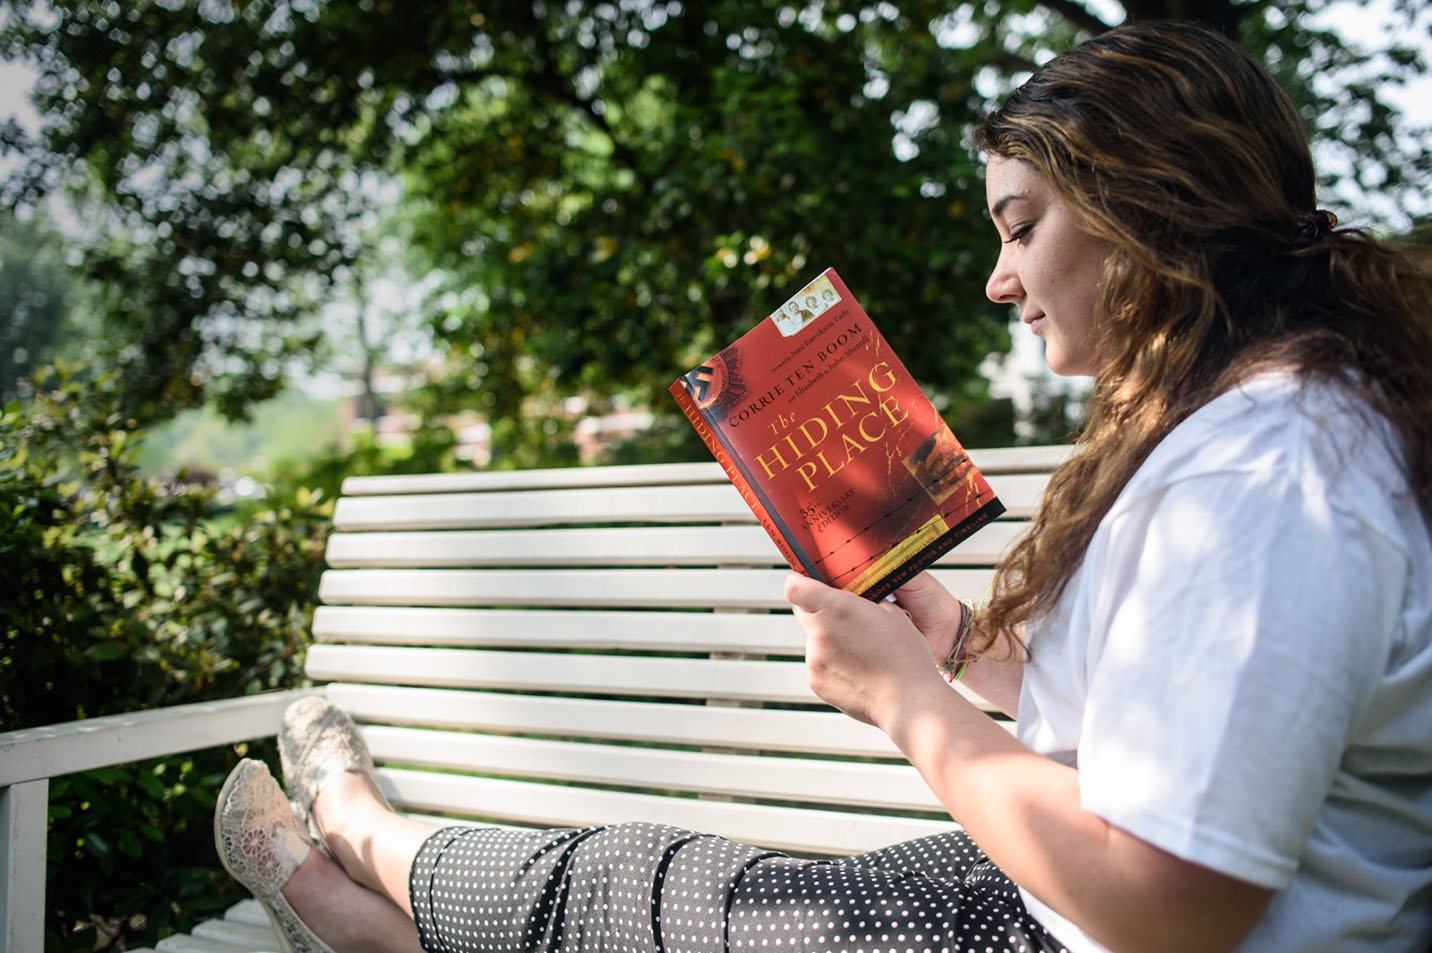 A photo of a student reading The Hiding Place by Corrie Ten Boom.